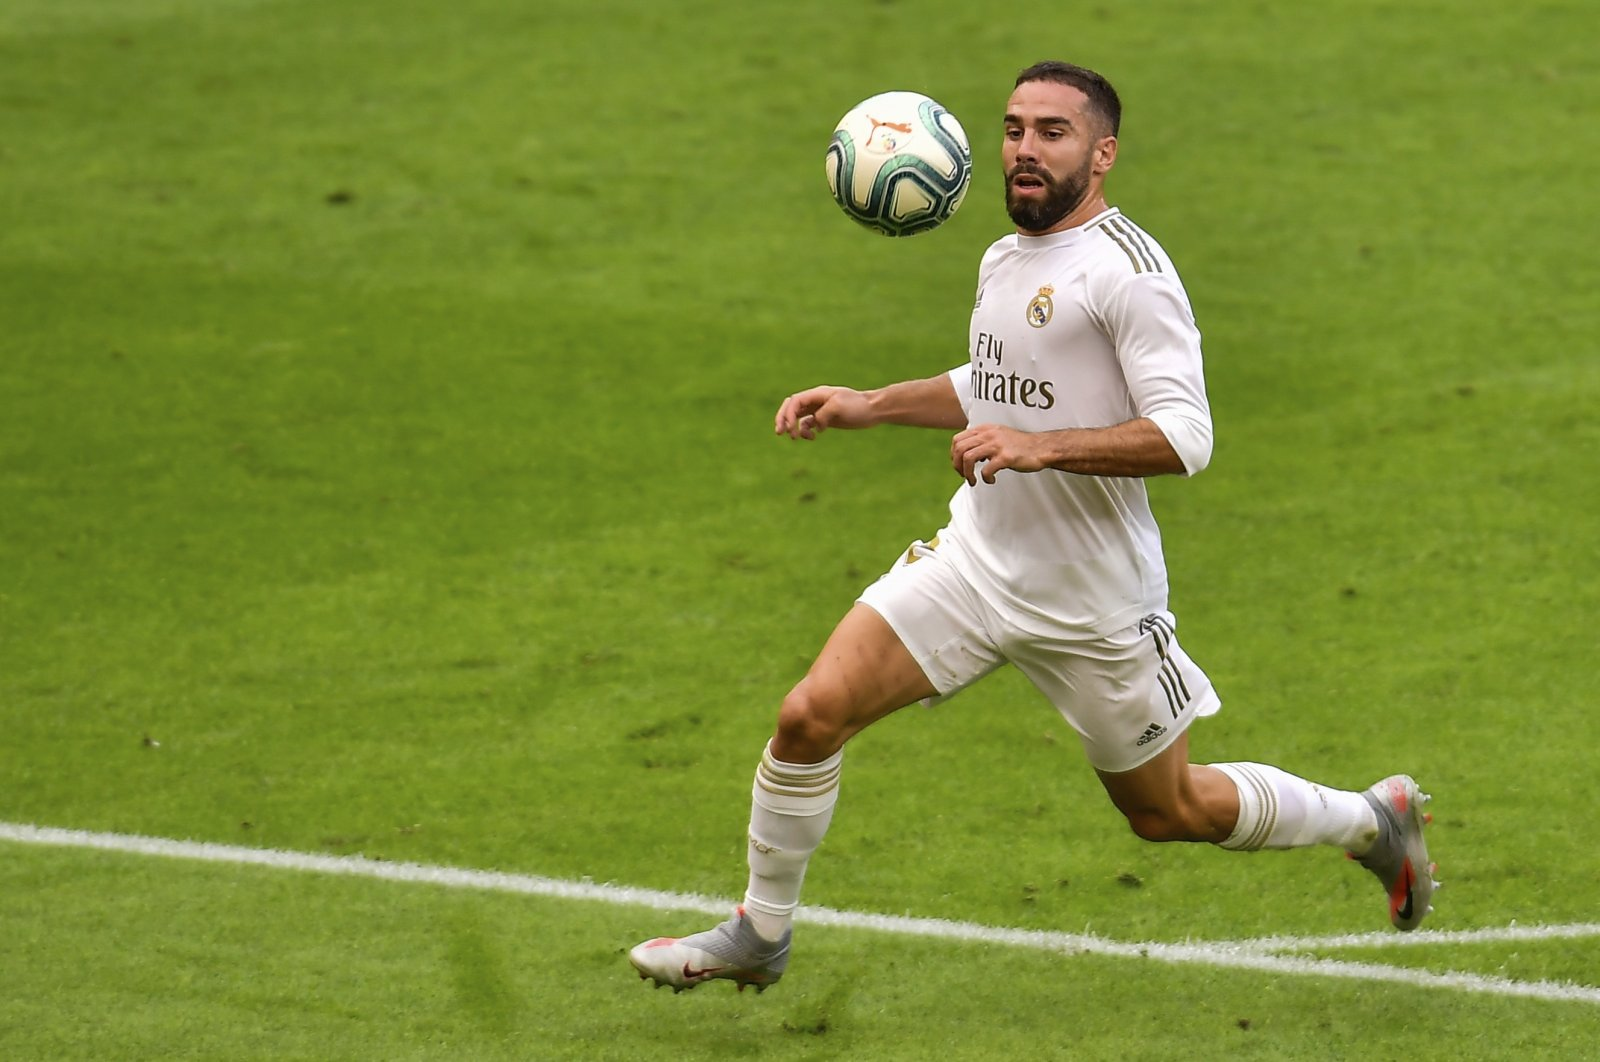 Real Madrid's Dani Carvajal views the ball during the Spanish La Liga match against Athletic Club at the San Manes stadium in Bilbao, Spain, July 5, 2020. (AP Photo)